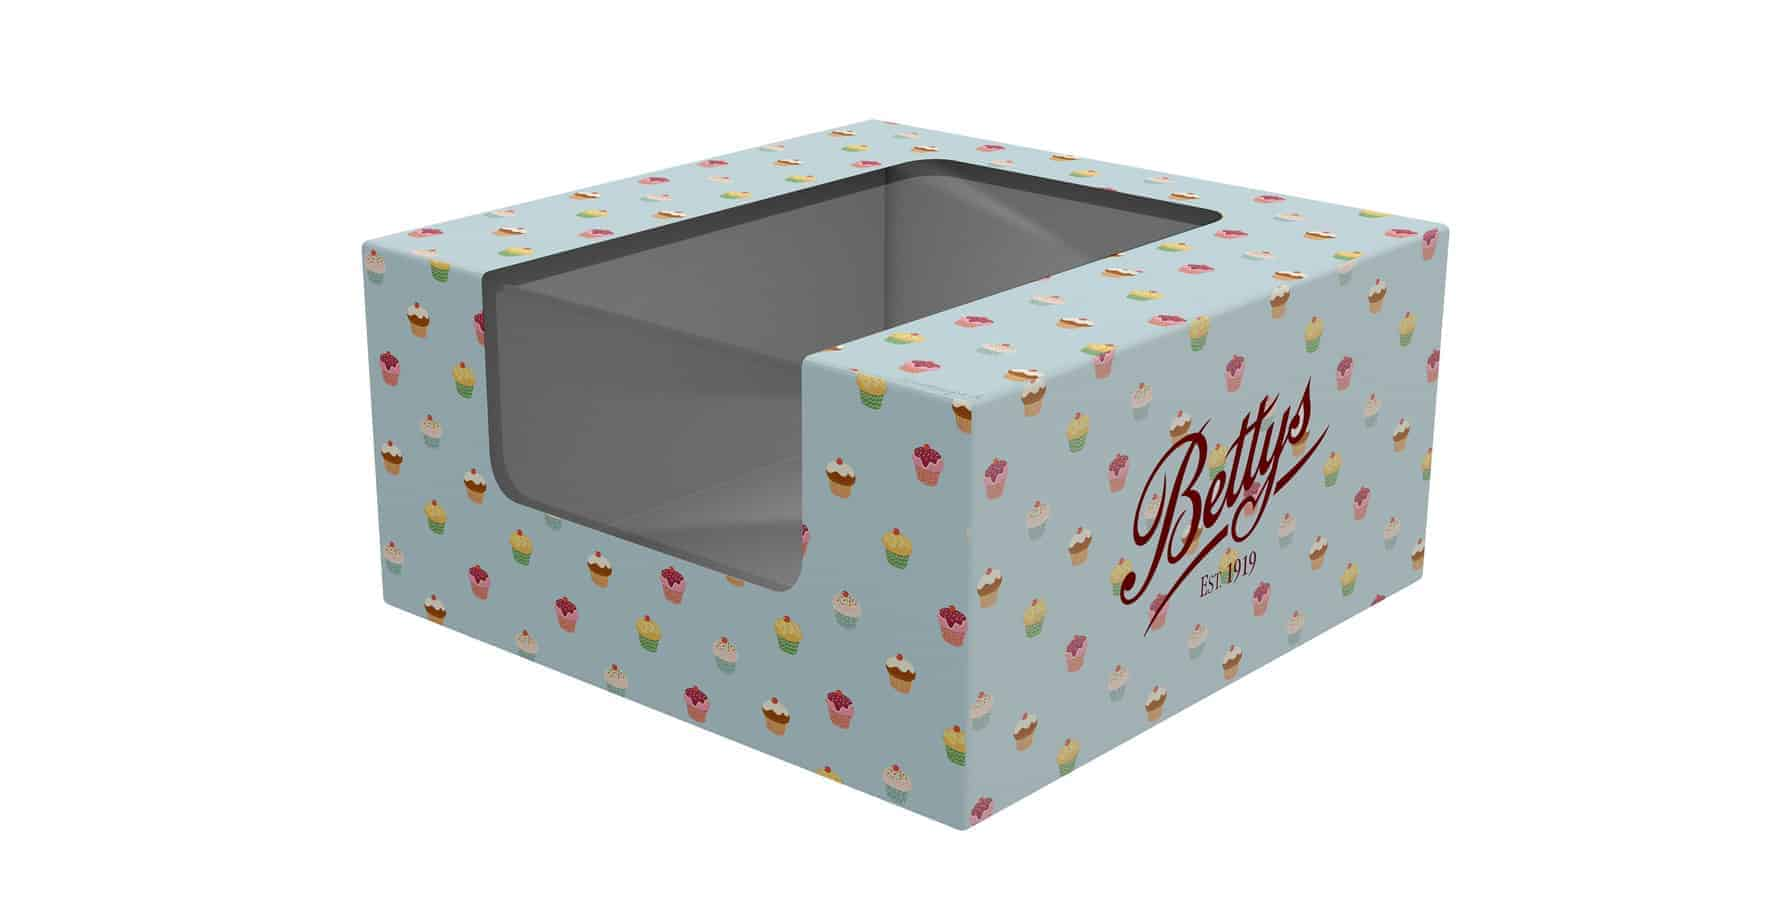 custom printed cake boxes with window